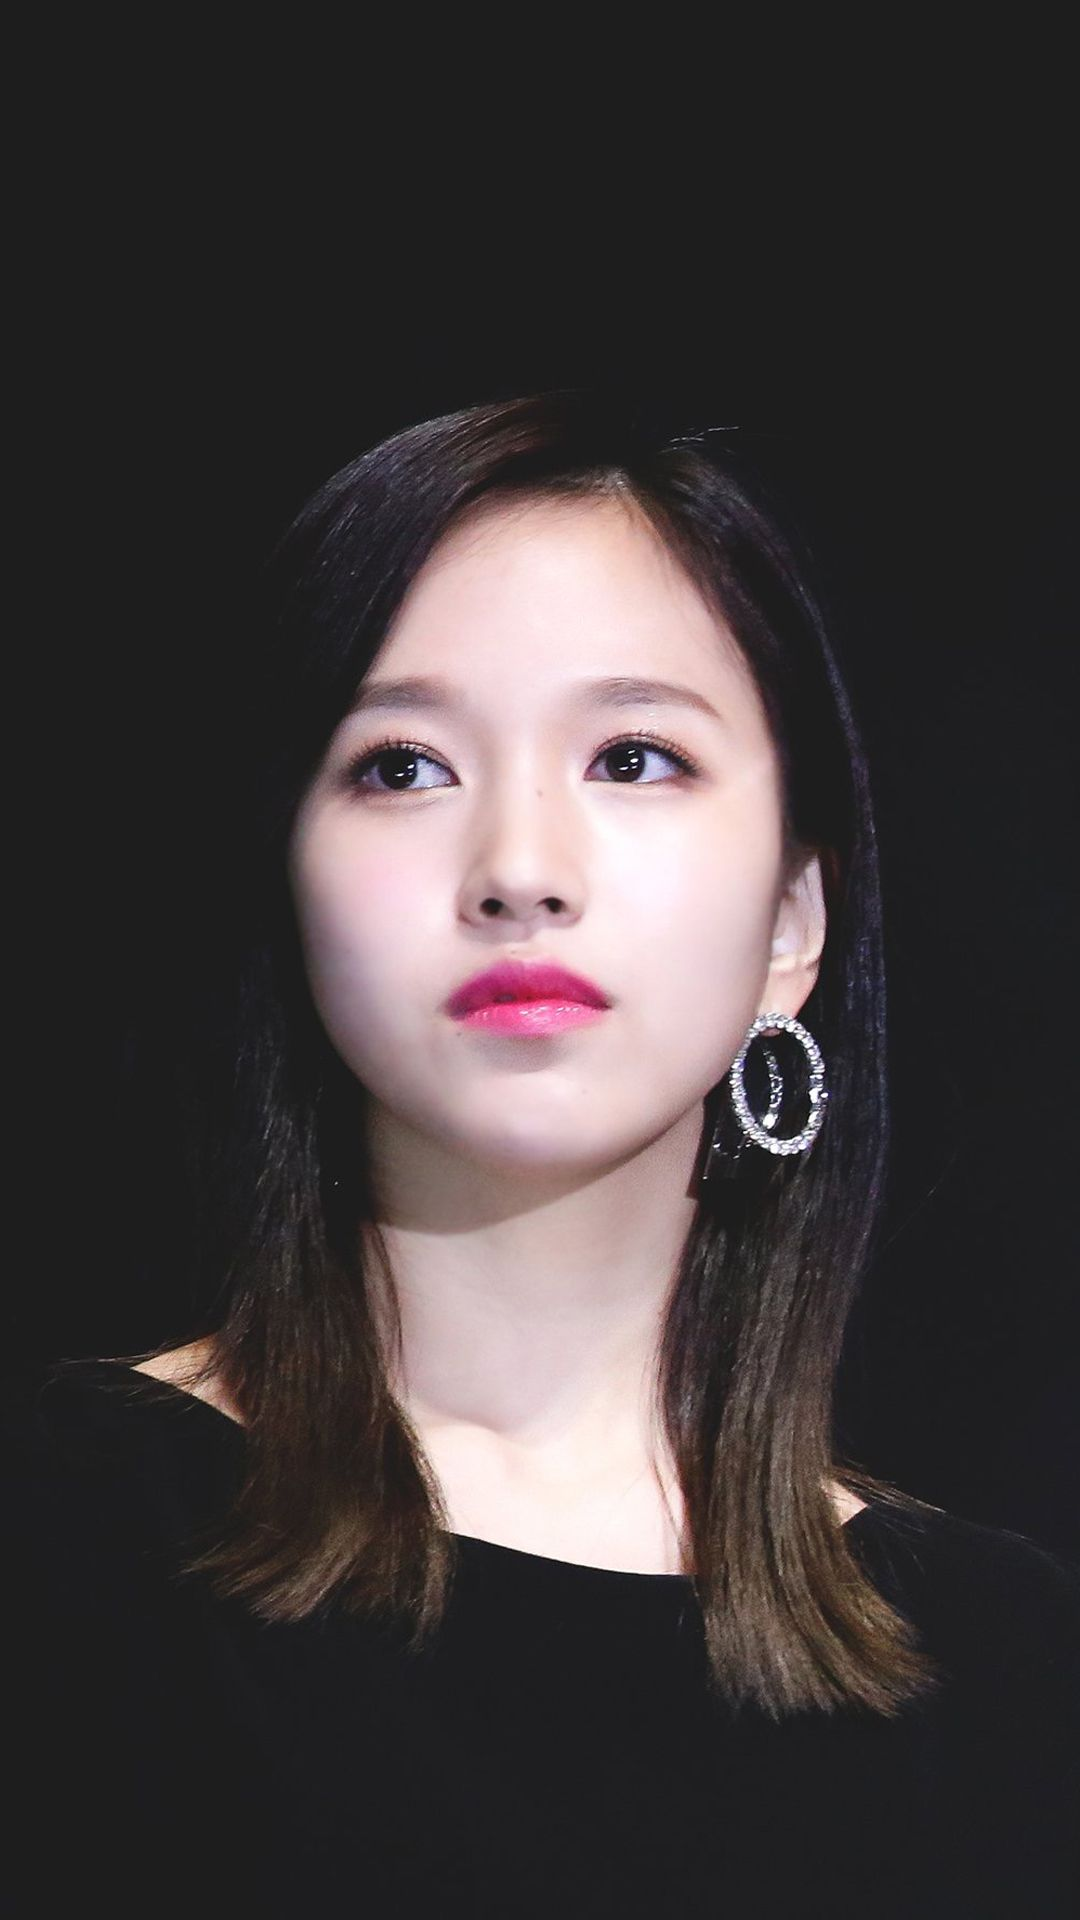 Twice Mina Free Pictures On Greepx